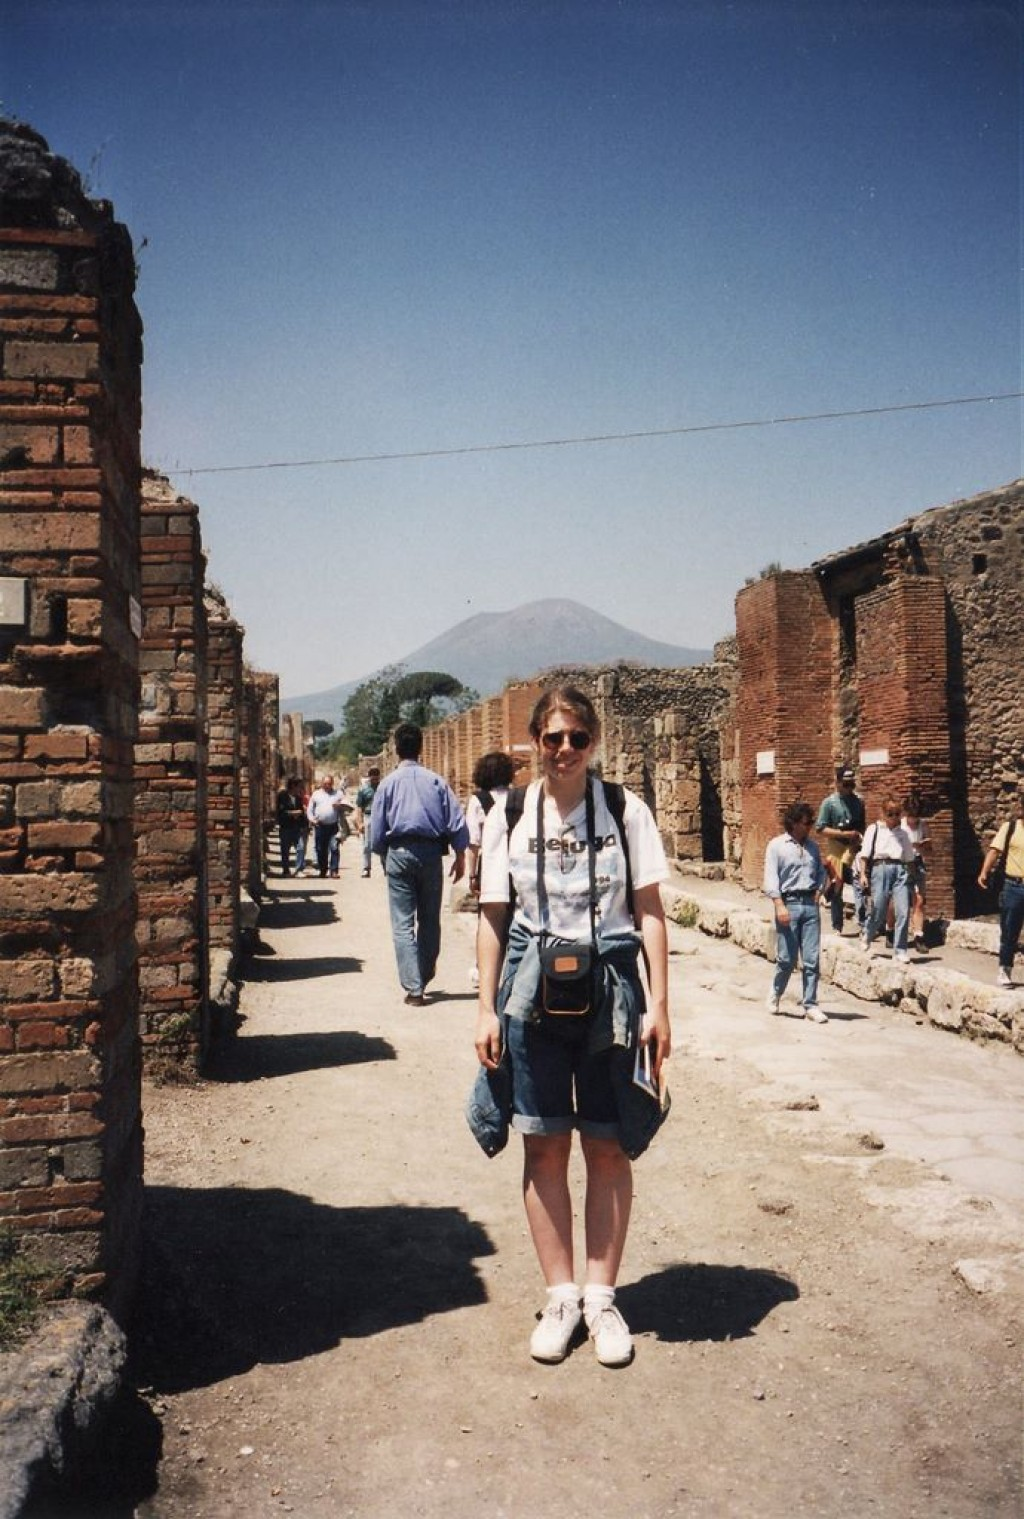 To this day, Pompeii is still the best Roman ruins we have seen in the world.